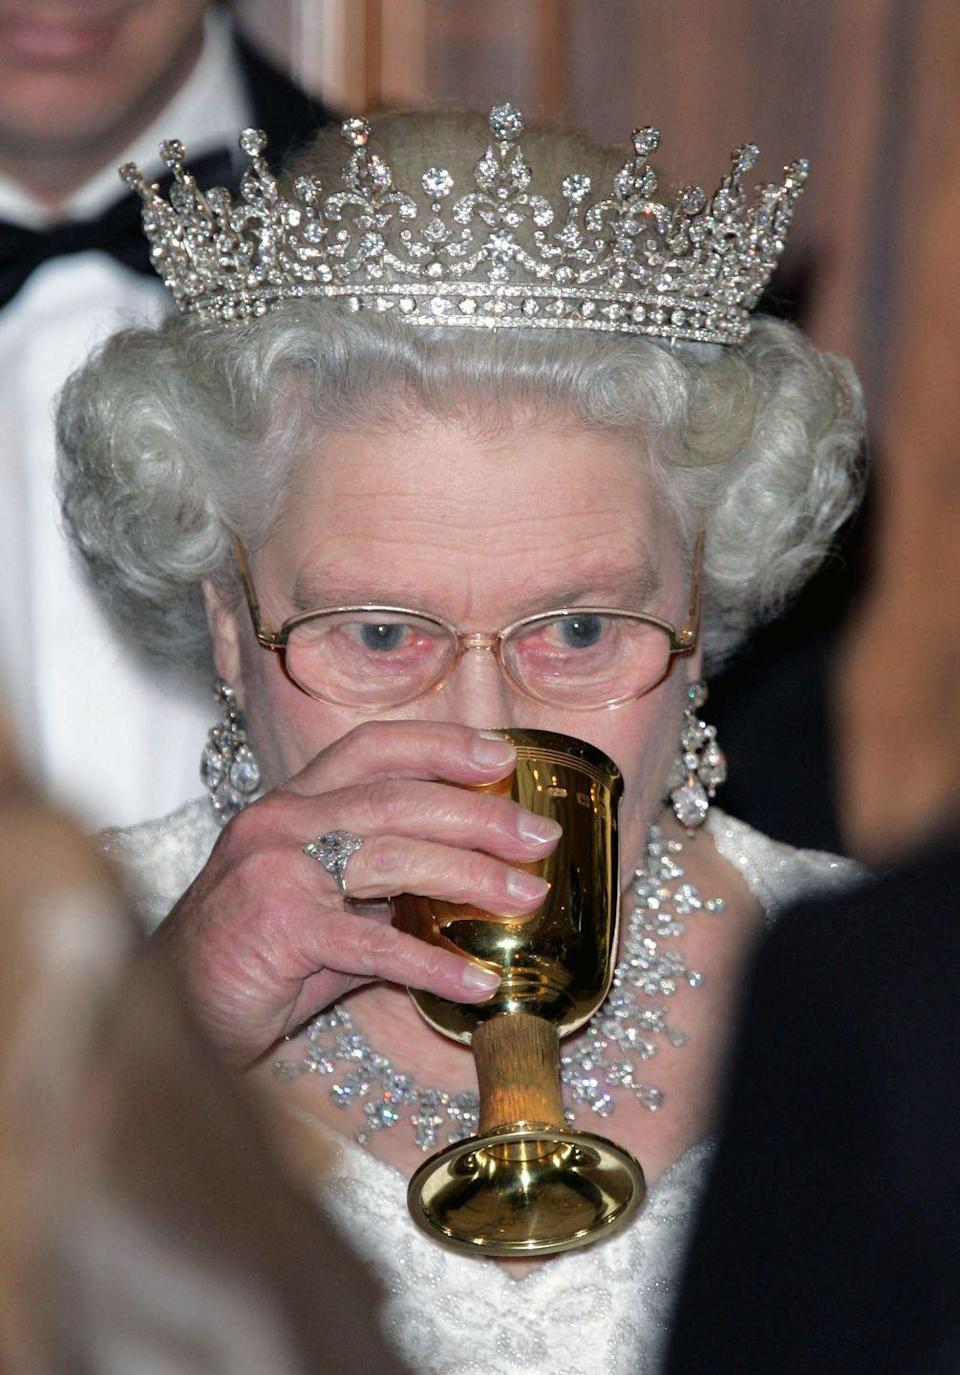 """<p>The royals don't just like to have a good drink at the holidays, said drink must be a stiff one. </p><p>""""They're not great drinkers, but the drinks are very strong,"""" royal expert, Ingrid Seward <a href=""""https://www.thesun.co.uk/fabulous/10510311/royal-family-christmas-tradition-queen-martini-prince-philip-tree/"""" rel=""""nofollow noopener"""" target=""""_blank"""" data-ylk=""""slk:reveals"""" class=""""link rapid-noclick-resp"""">reveals</a>. """"So any one that's a guest would be knocked out by these drinks.""""</p>"""